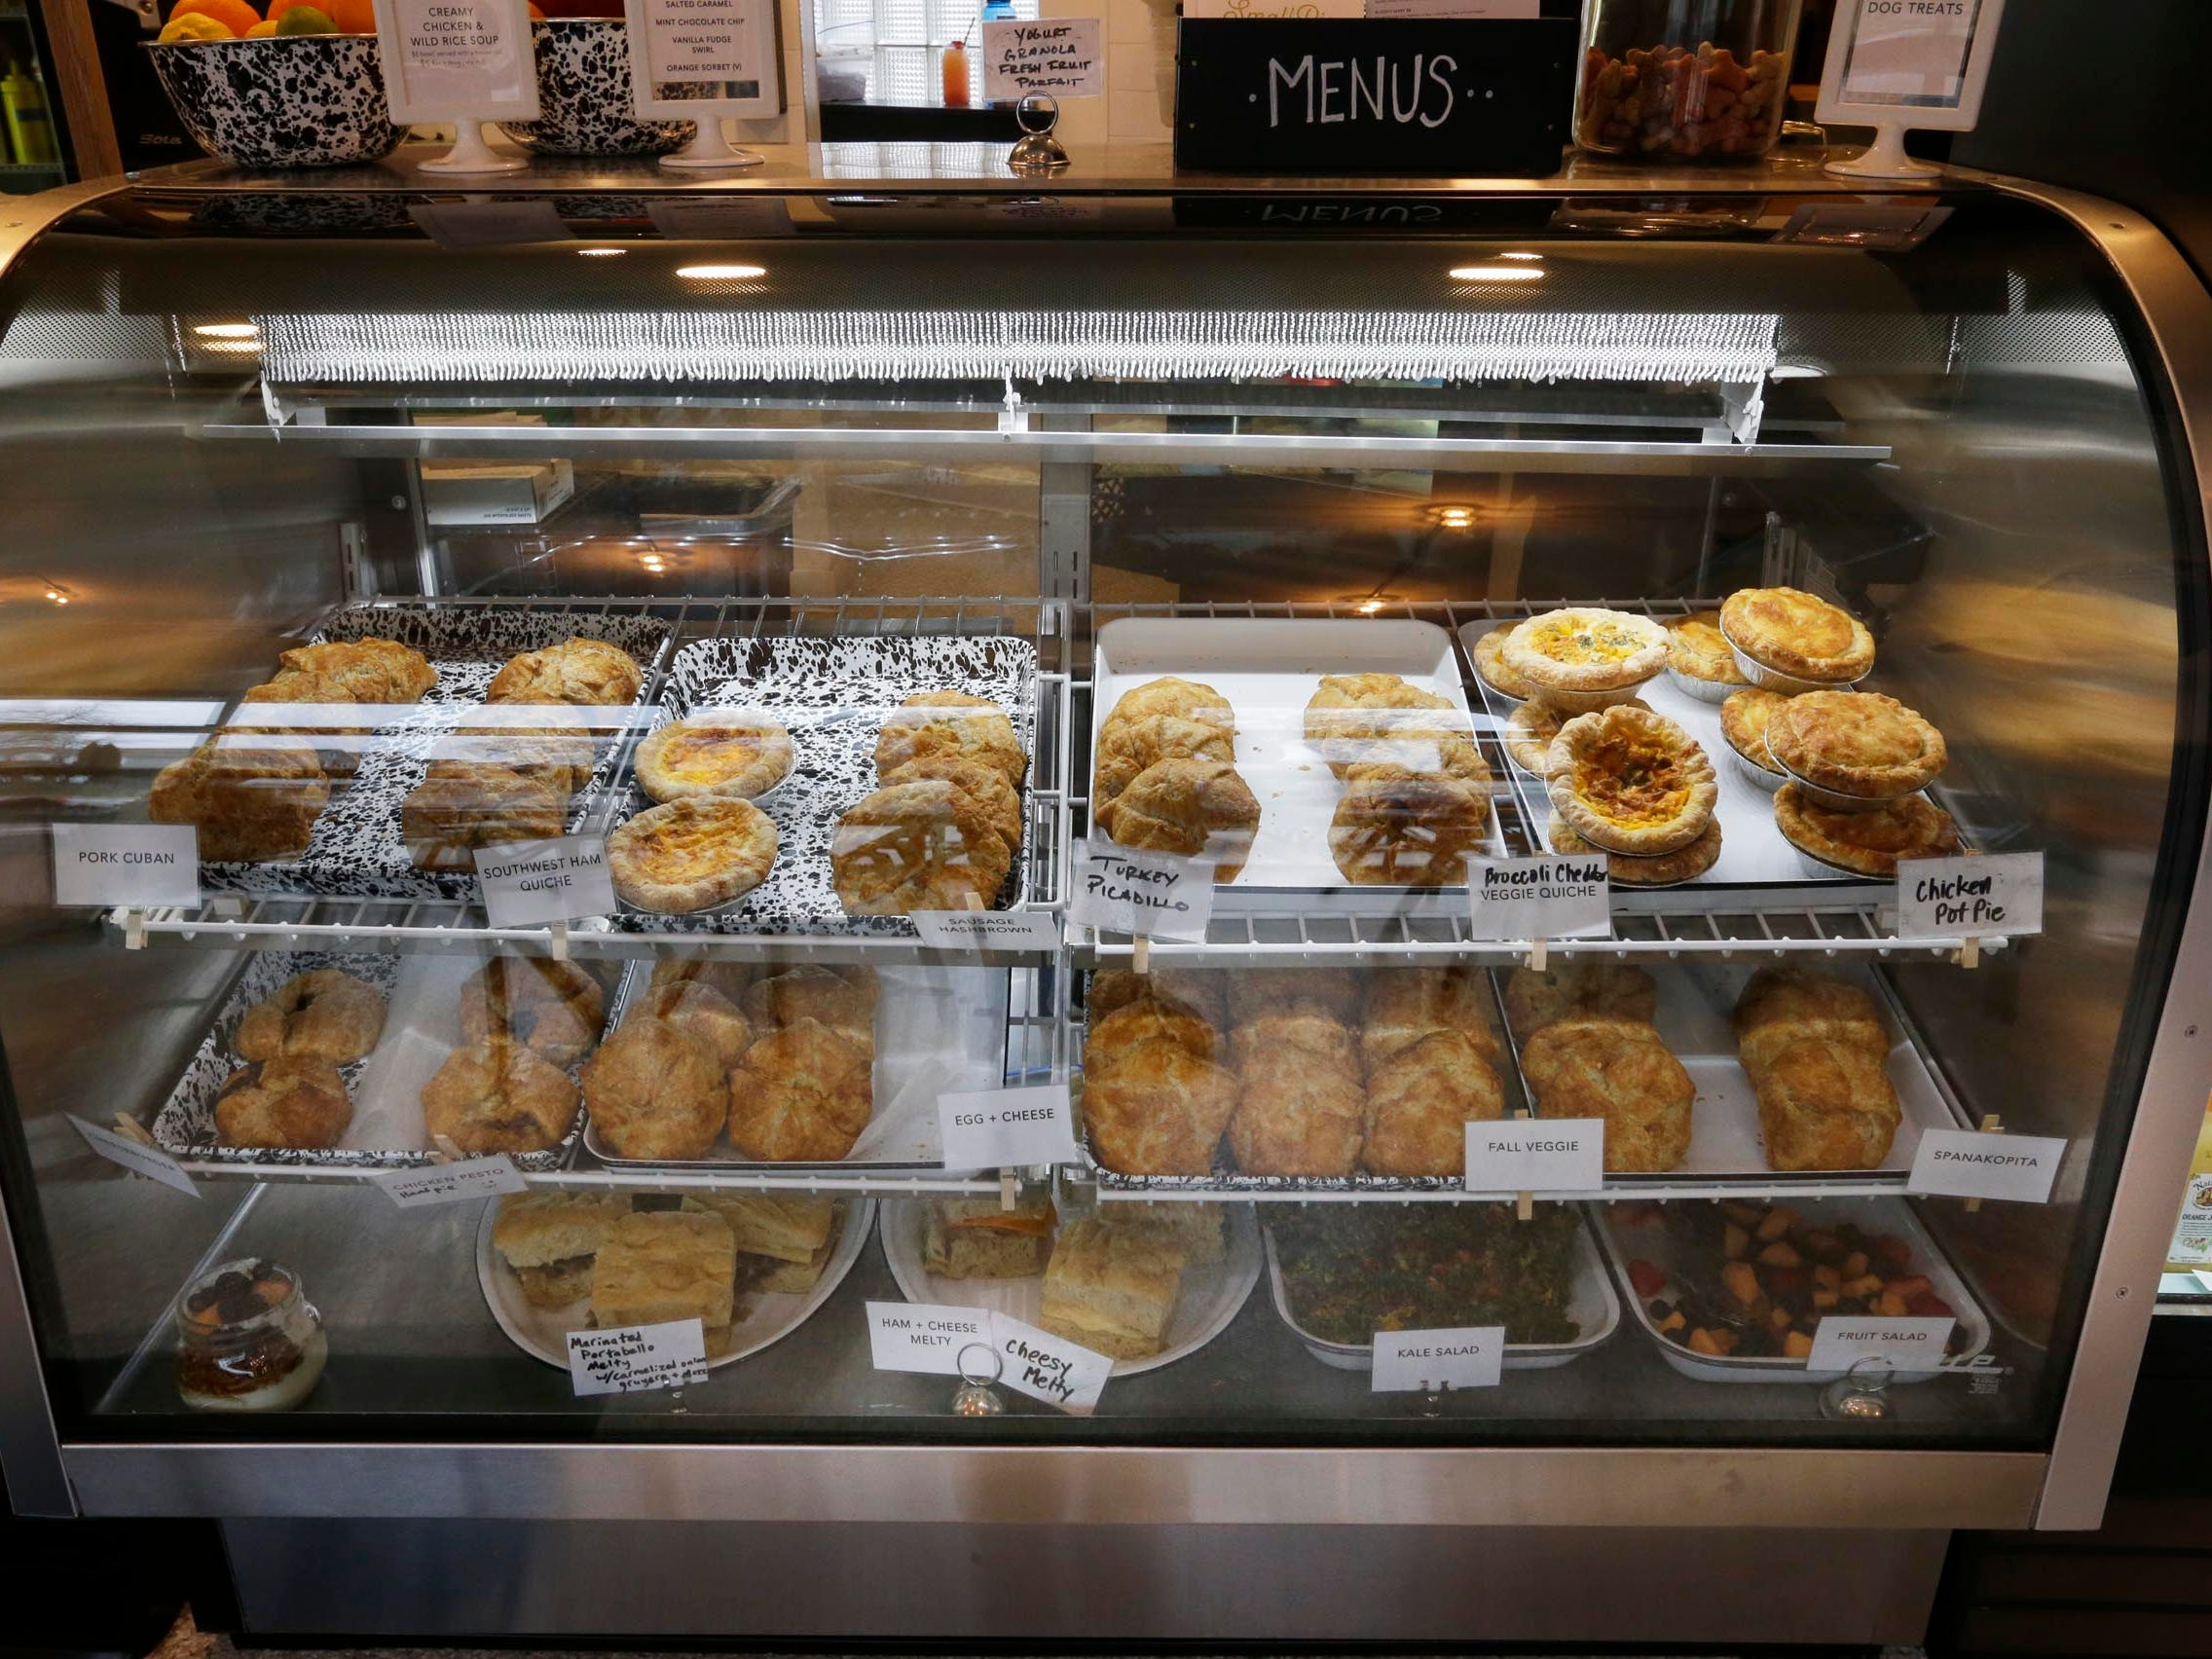 Savory Hand Pies, Sweet Hand Pies and a bakeshop with treats made from scratch are featured at  SmallPie.